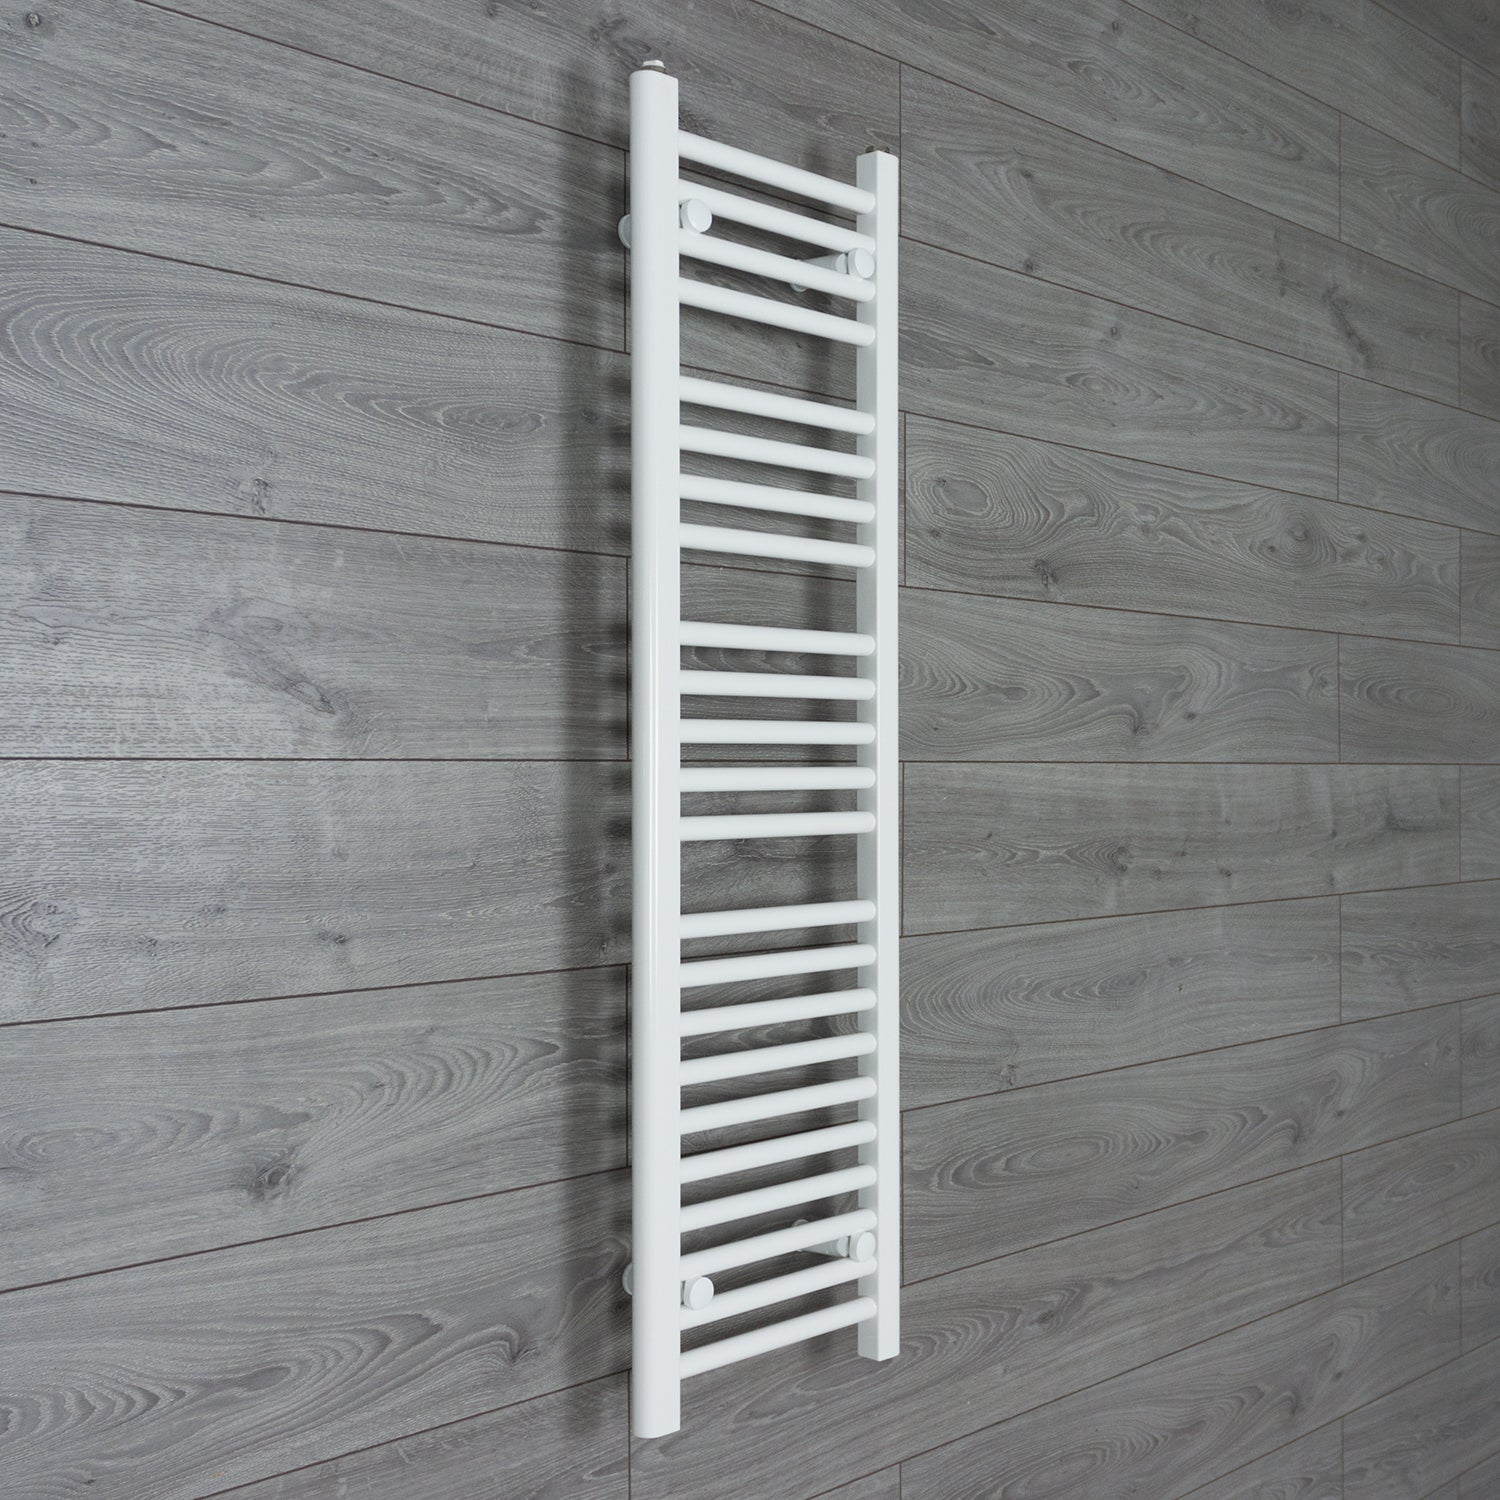 350mm Wide 1200mm High Flat White Heated Towel Rail Radiator HTR,Towel Rail Only